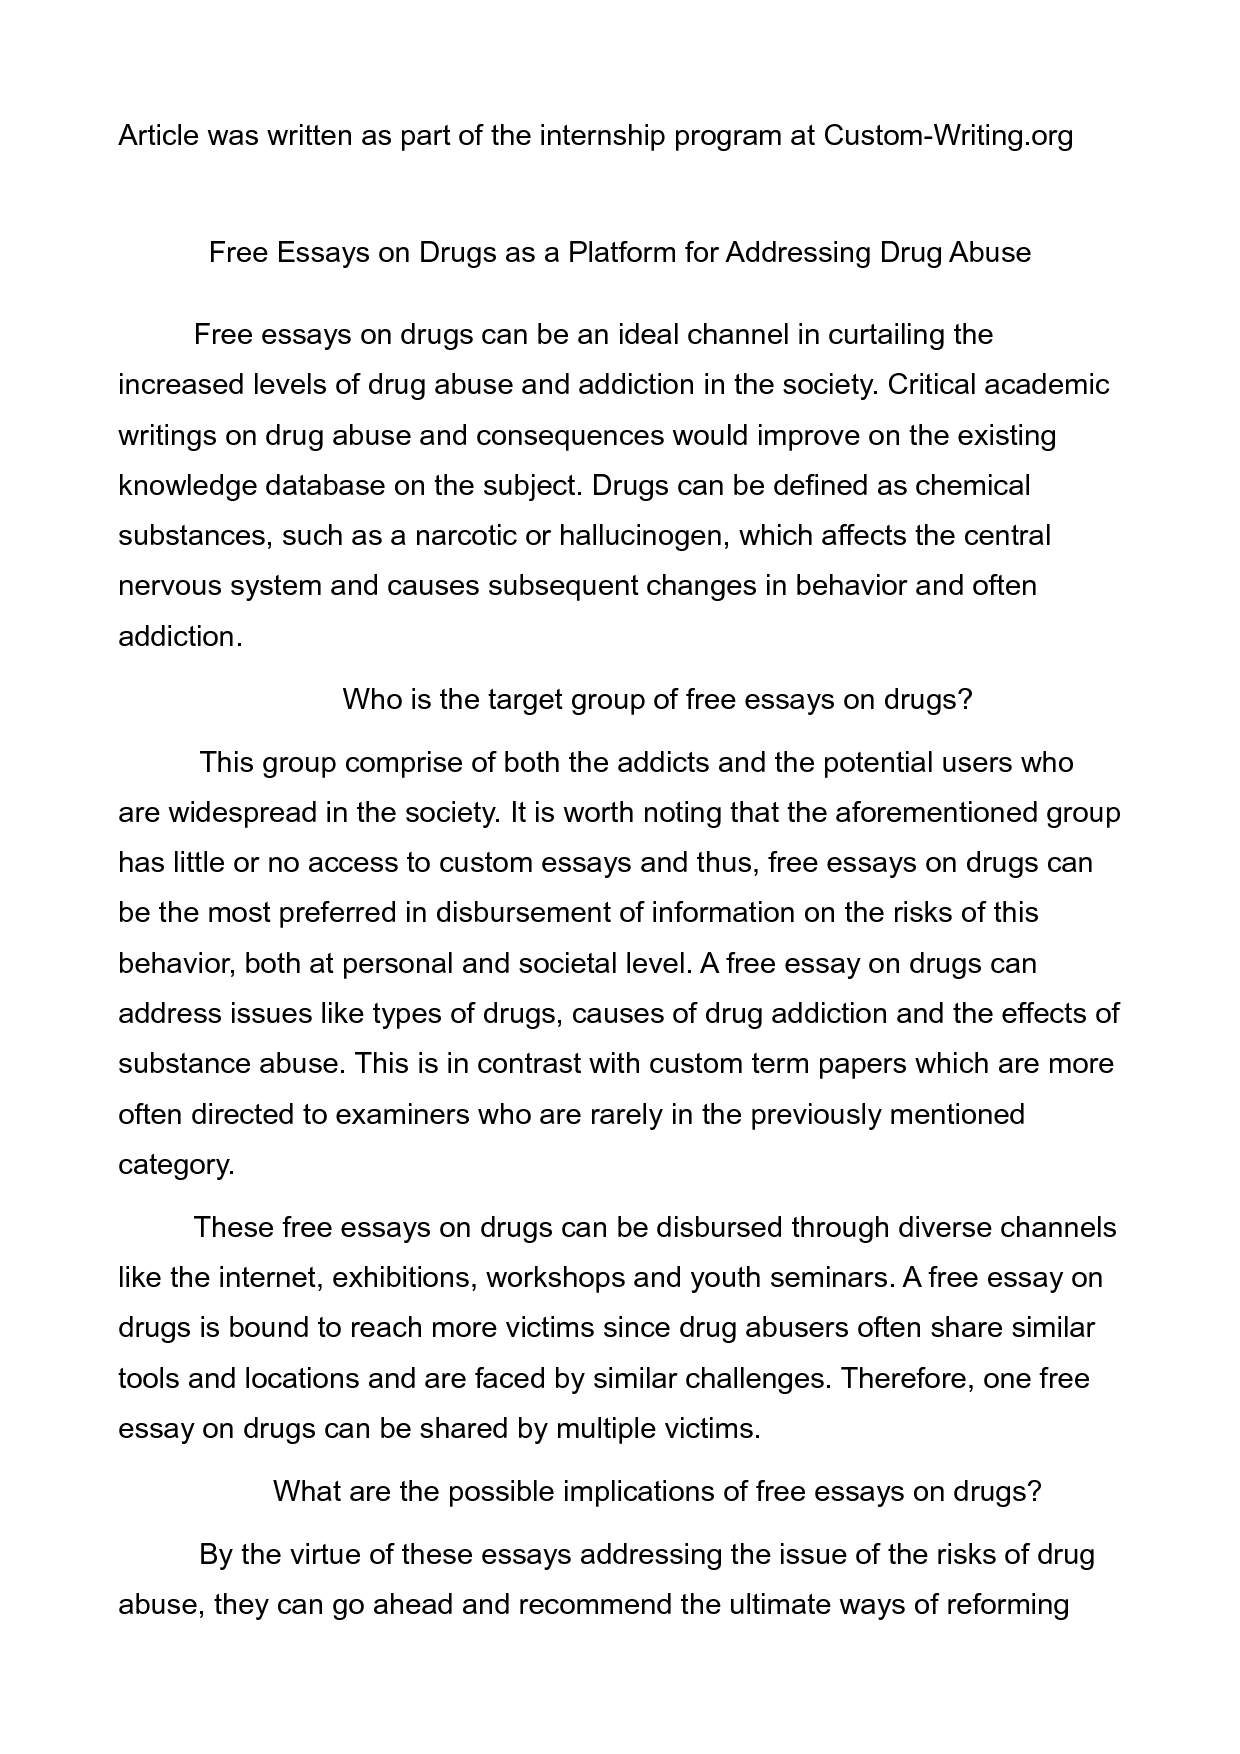 009 Argumentative Essay About Drugs Amazing Definition Pdf Sample Middle School Topics For High